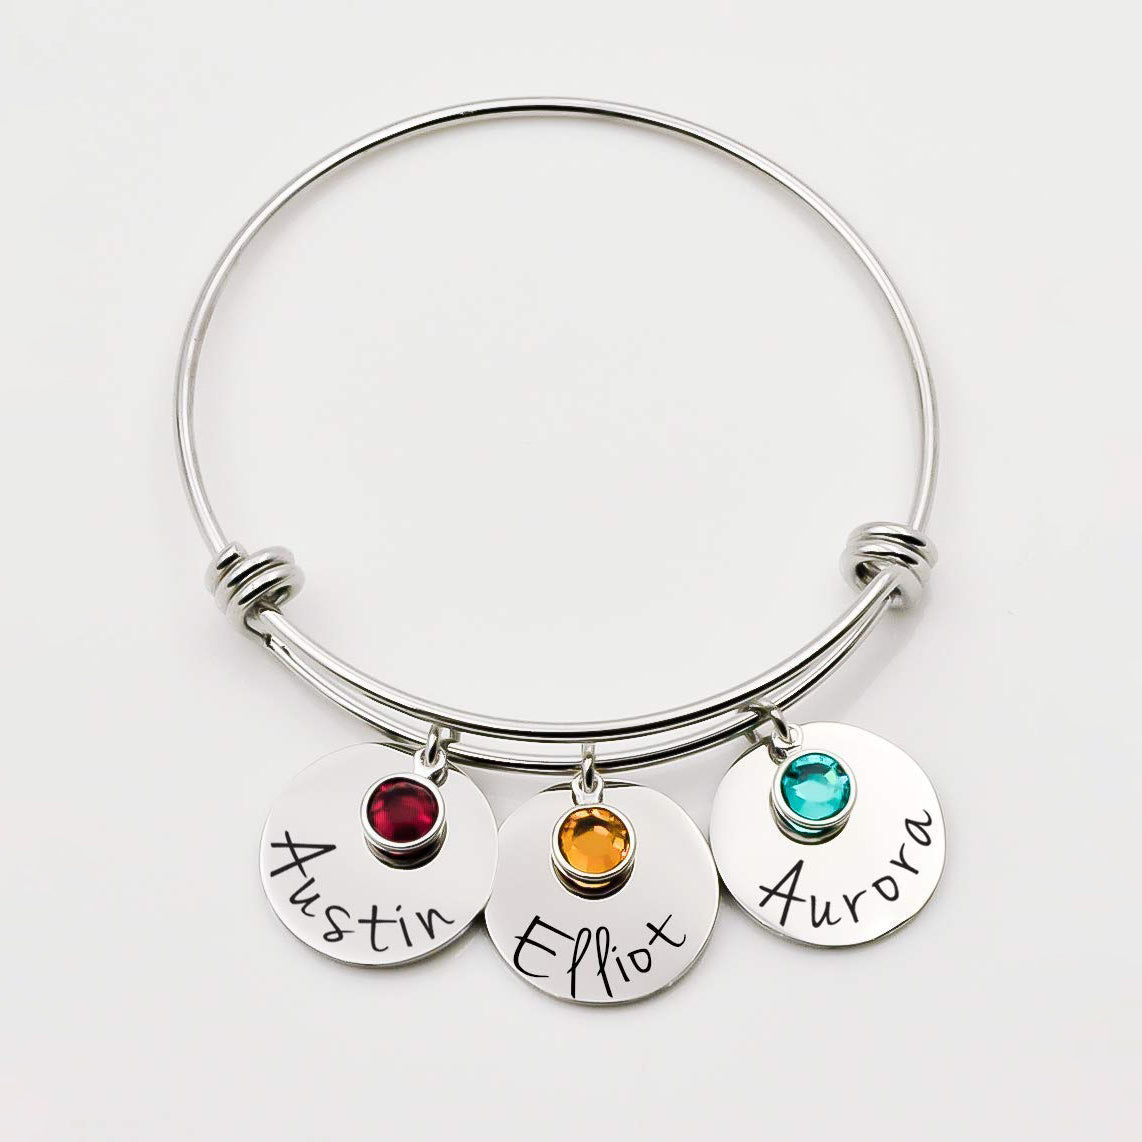 925 Sterling Silver Personalized Name Bracelet With Birthstone